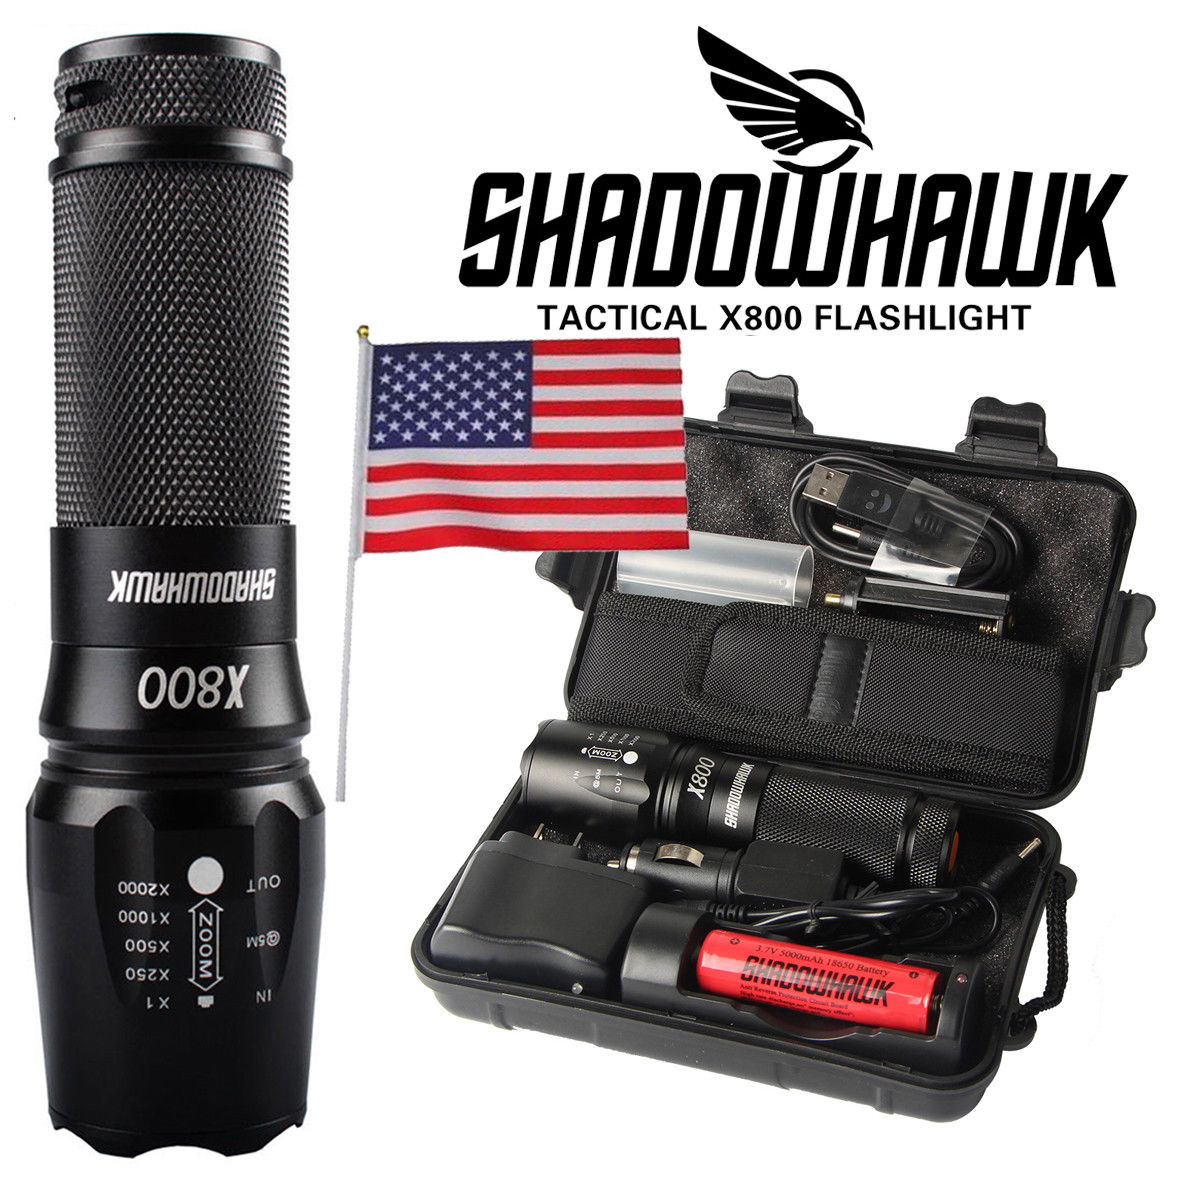 Shadowhawk LED Military Tactical Flashlight - CartUp.com